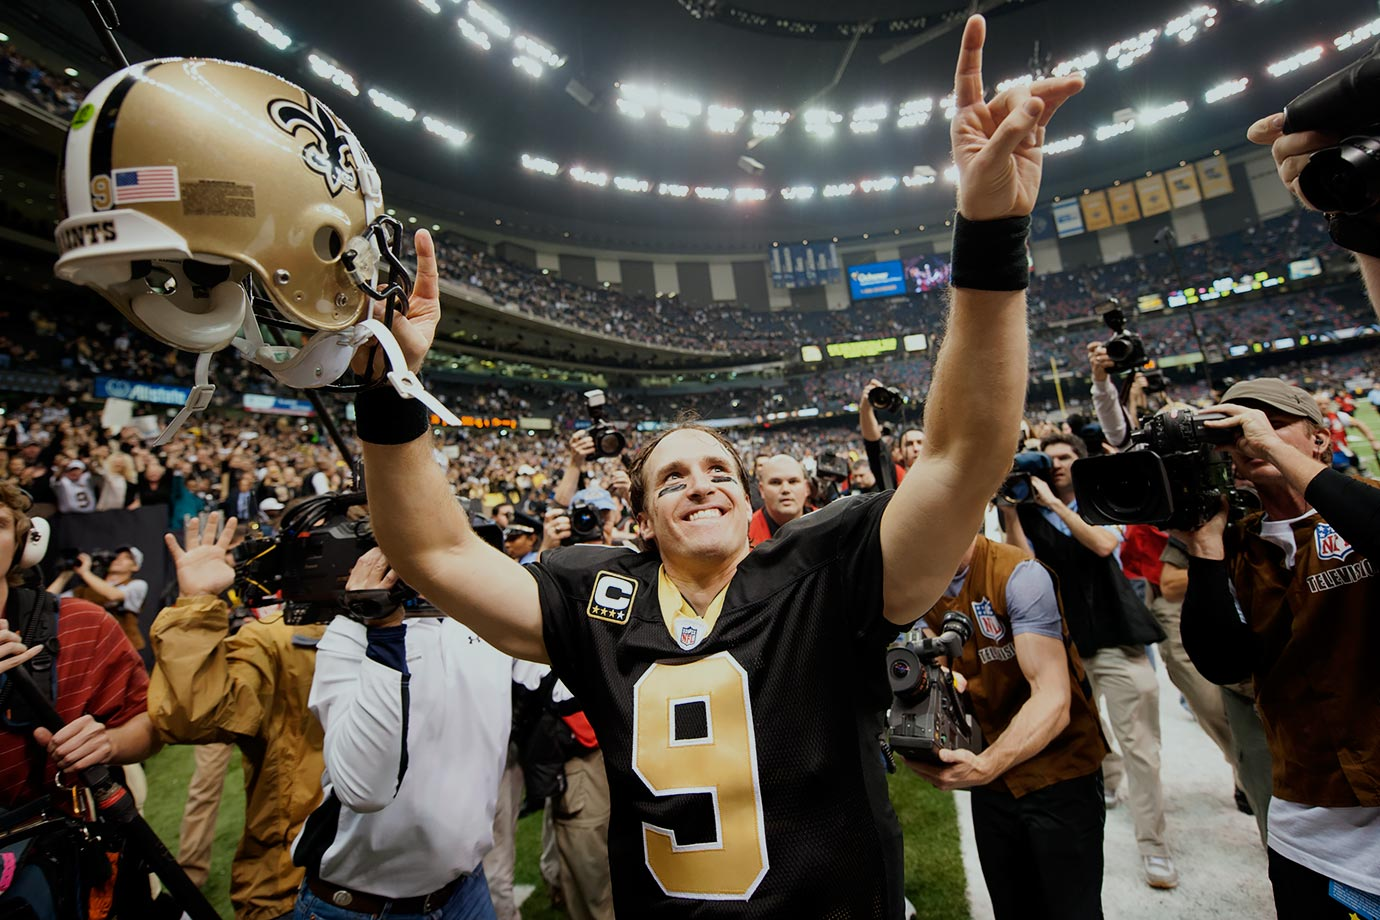 Drew Brees and the Saints had New Orleans' fans dreaming of a perfect season after winning their first 13 of the season, including two over Atlanta. The magic carpet ride ended when Dallas upended the Saints at home in a Saturday night game on Dec. 20, 24-17.